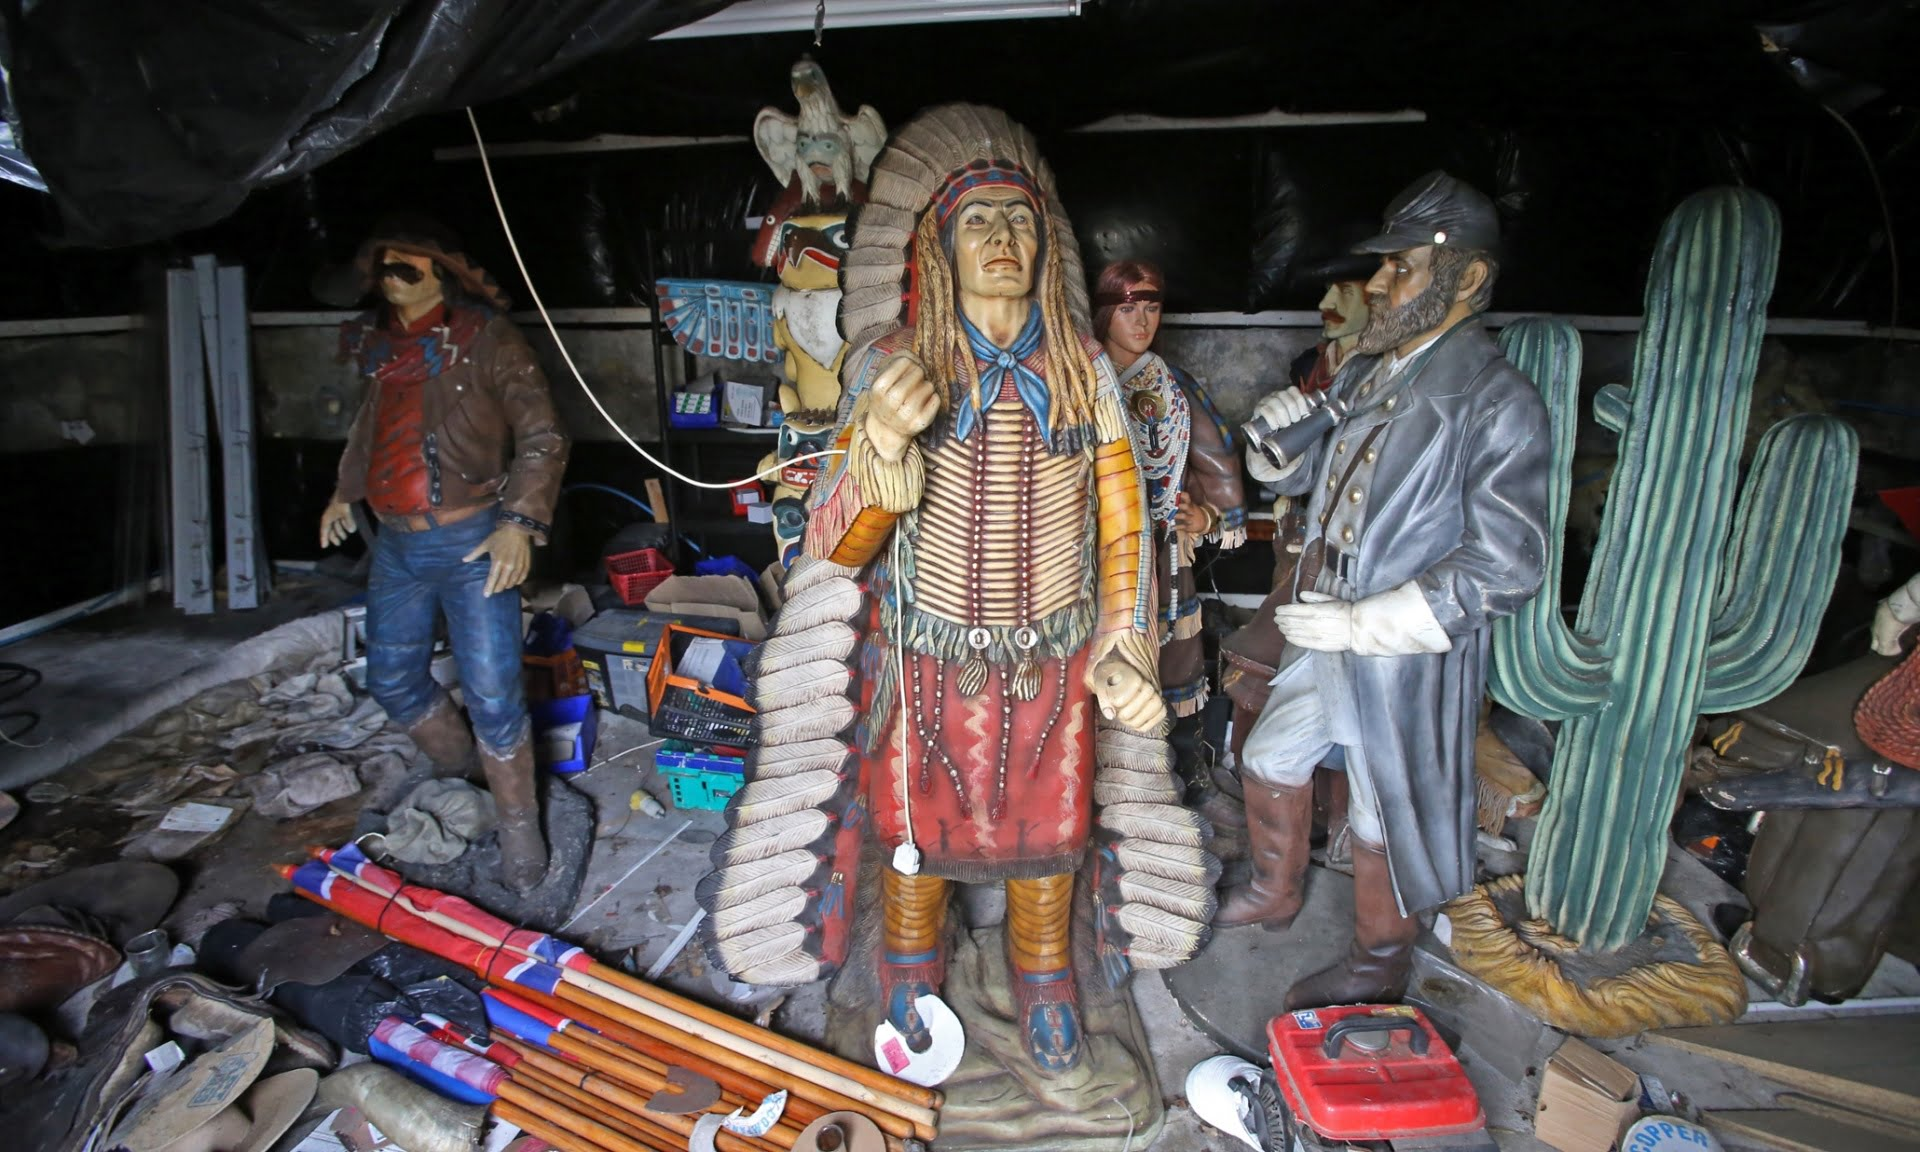 The hayshed is now a store for lifesize, painted wooden figures of cowboys and Indians.